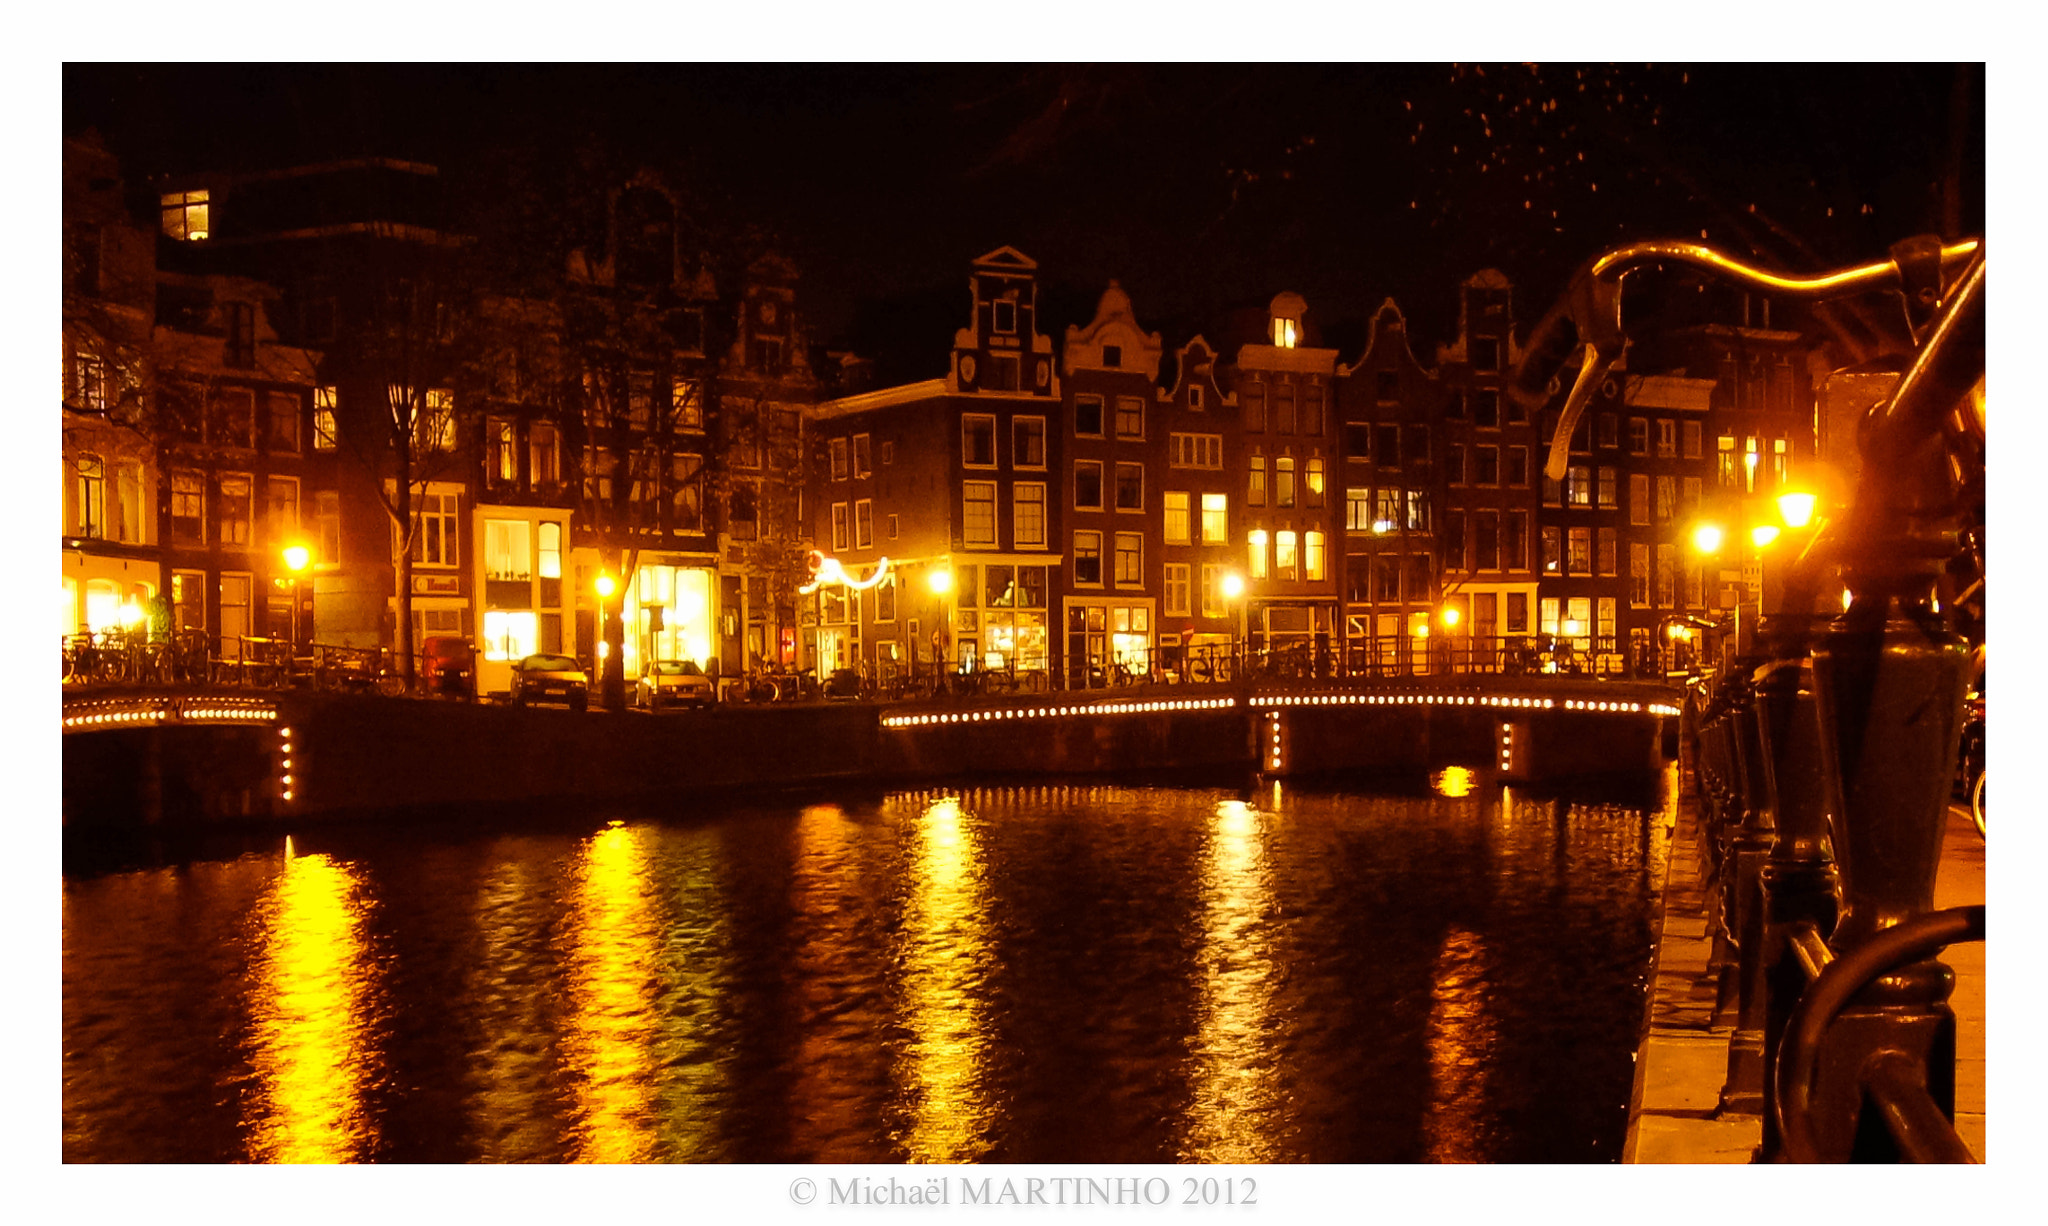 Photograph Lights of Amsterdam by Michaël MARTINHO on 500px